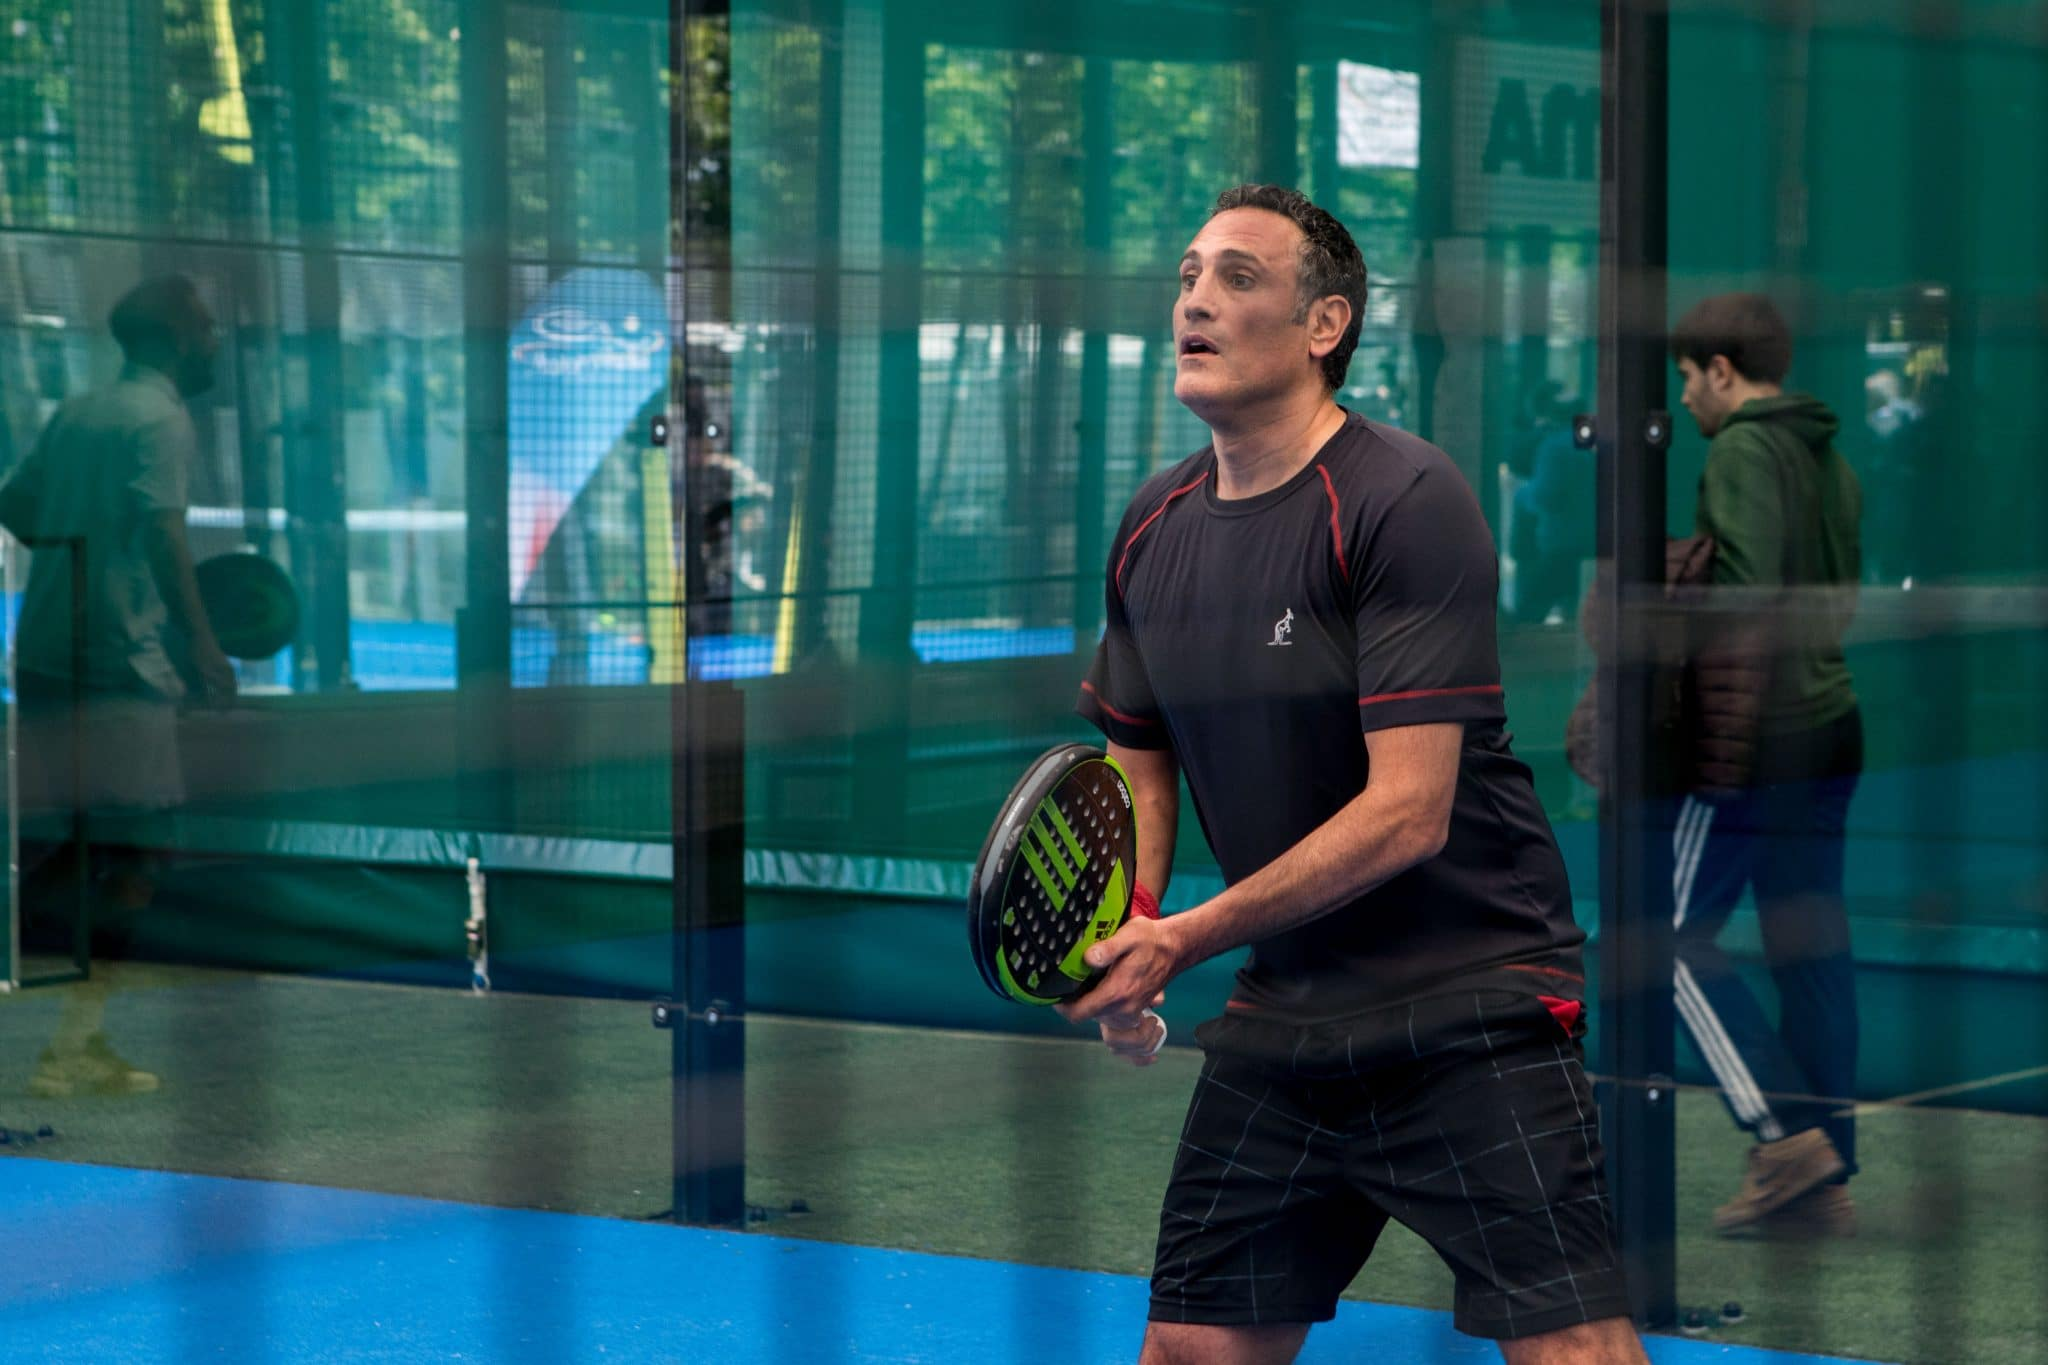 Nicola Amoruso during the mini padel tournament organized with 35 legends of Italian soccer, in Milan, Italy, on May 21, 2019. (Photo by Mairo Cinquetti/NurPhoto via Getty Images)